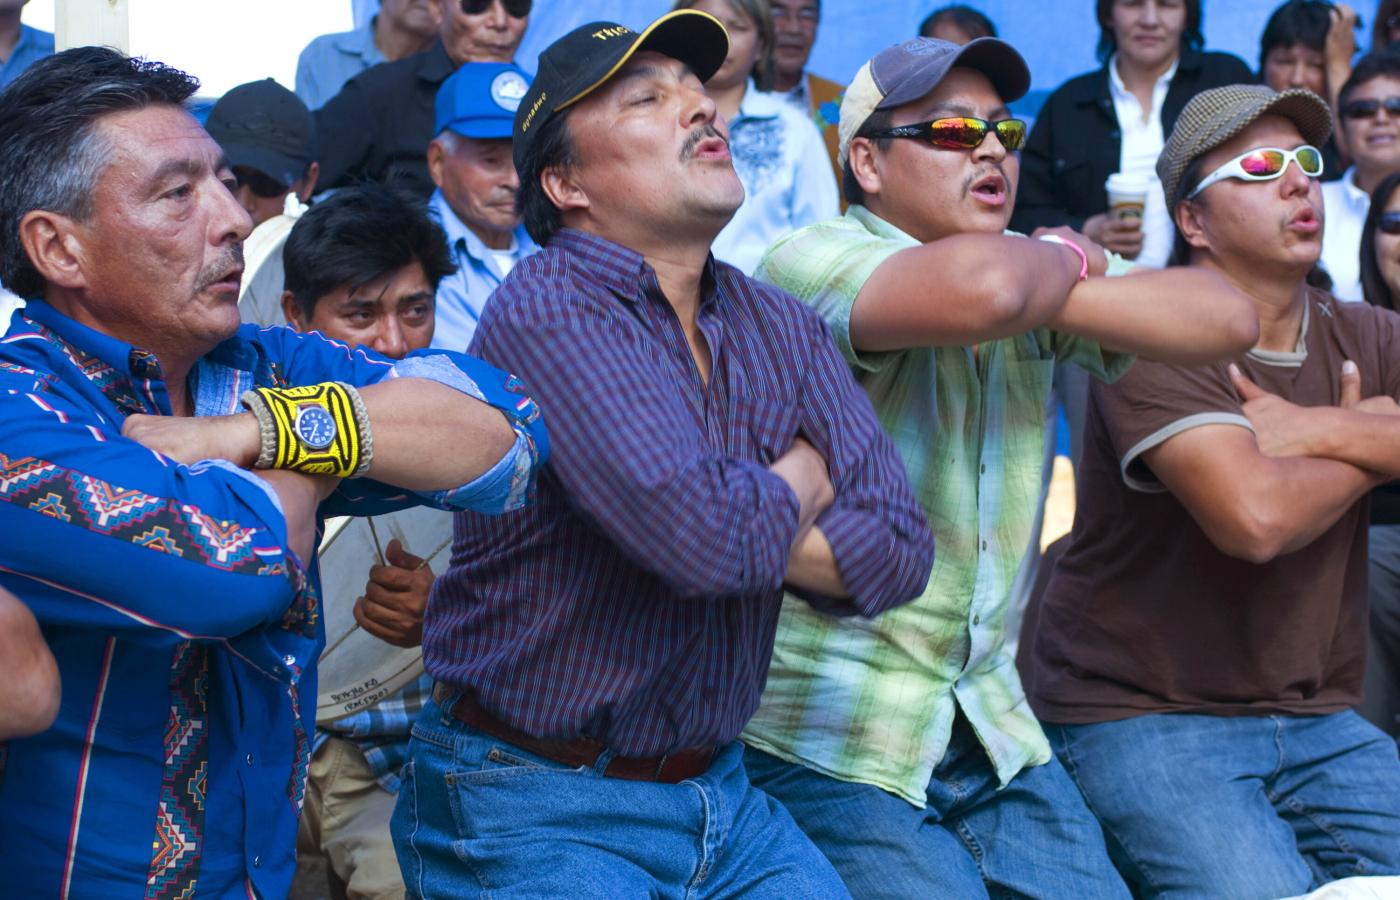 Dene dancing in a crowd with their arms crossed